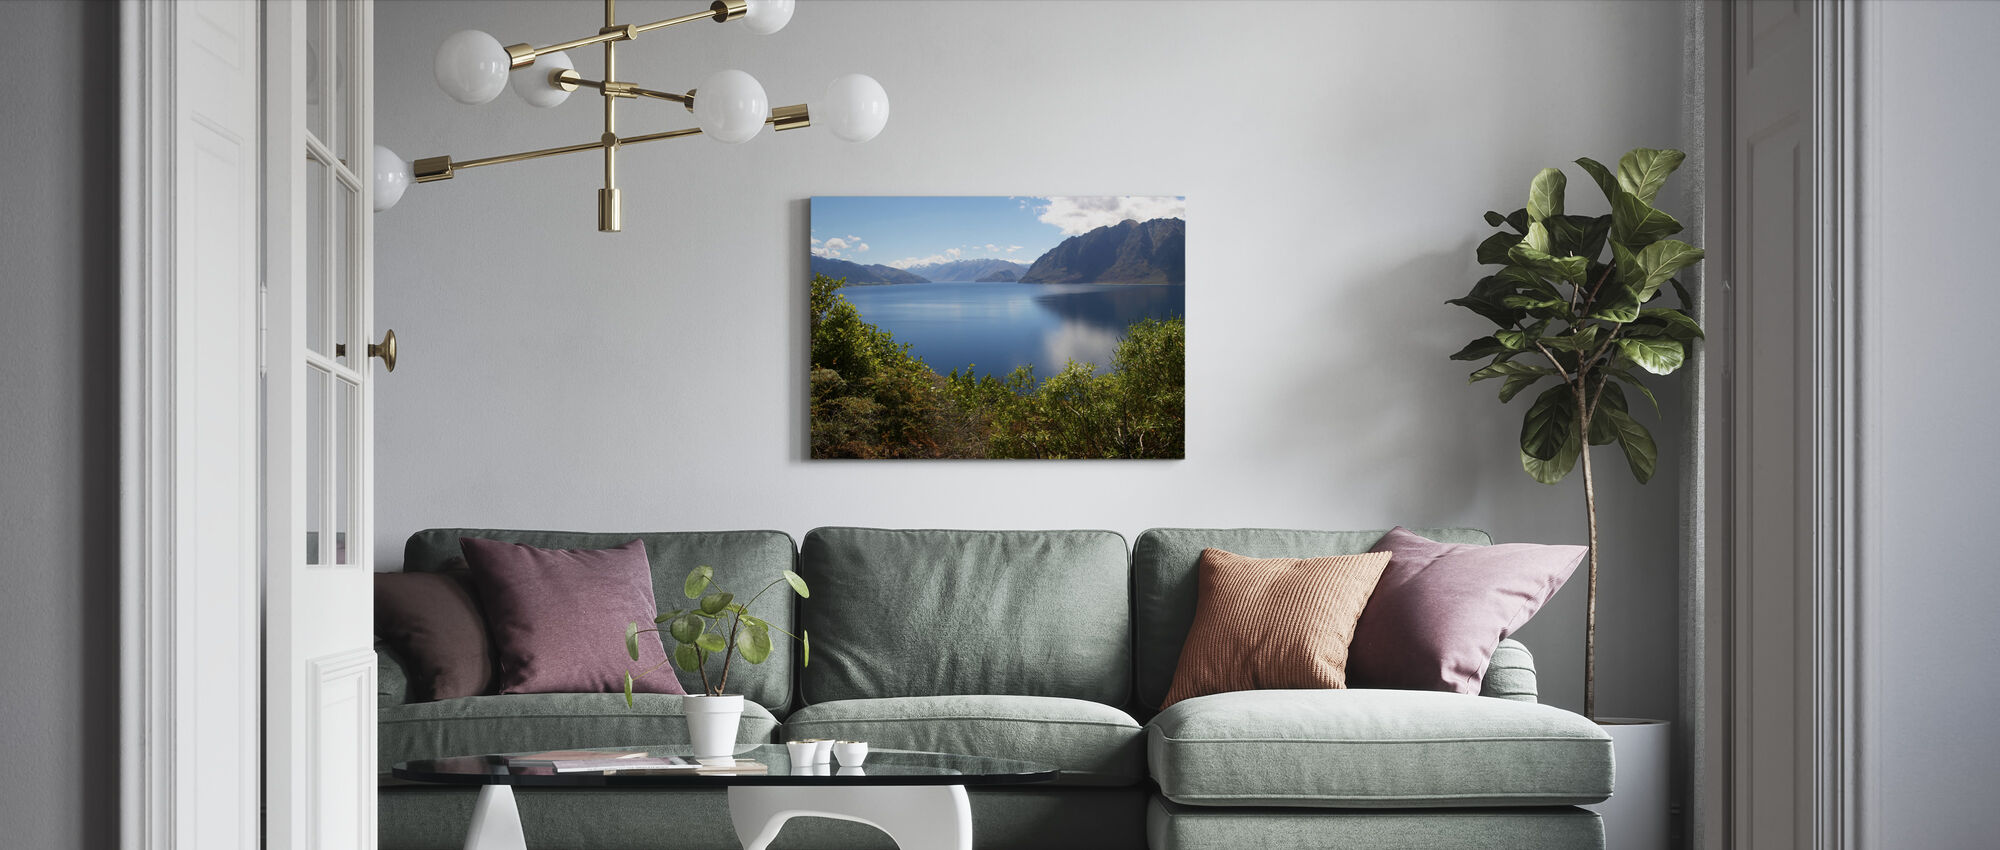 Nz Lake - Canvas print - Living Room